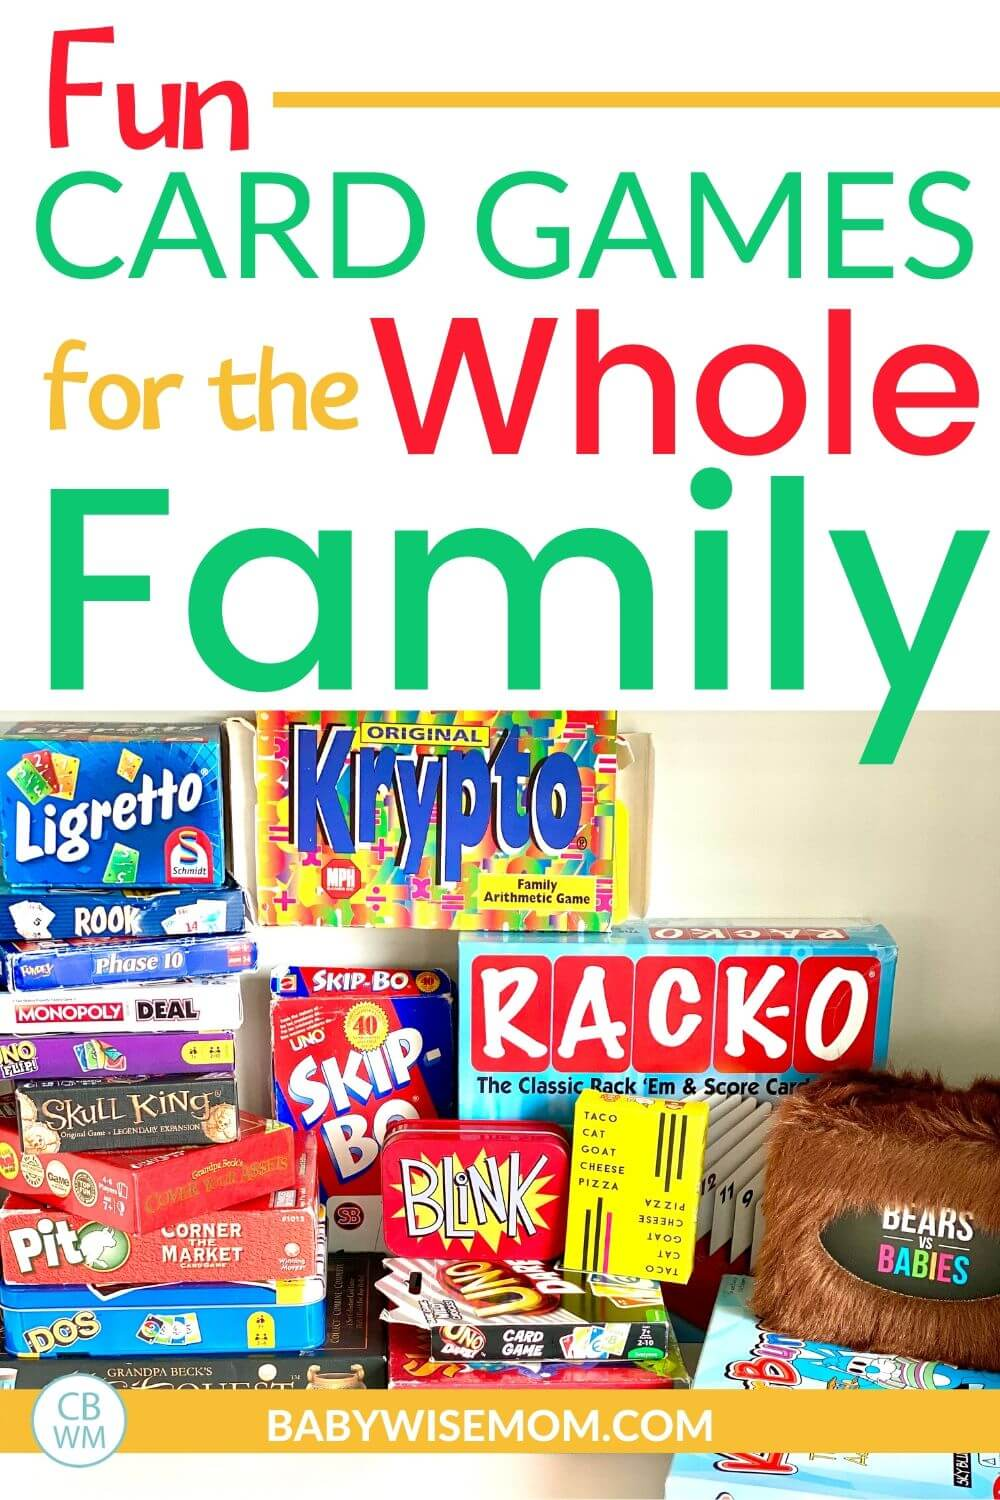 Card games for the whole family